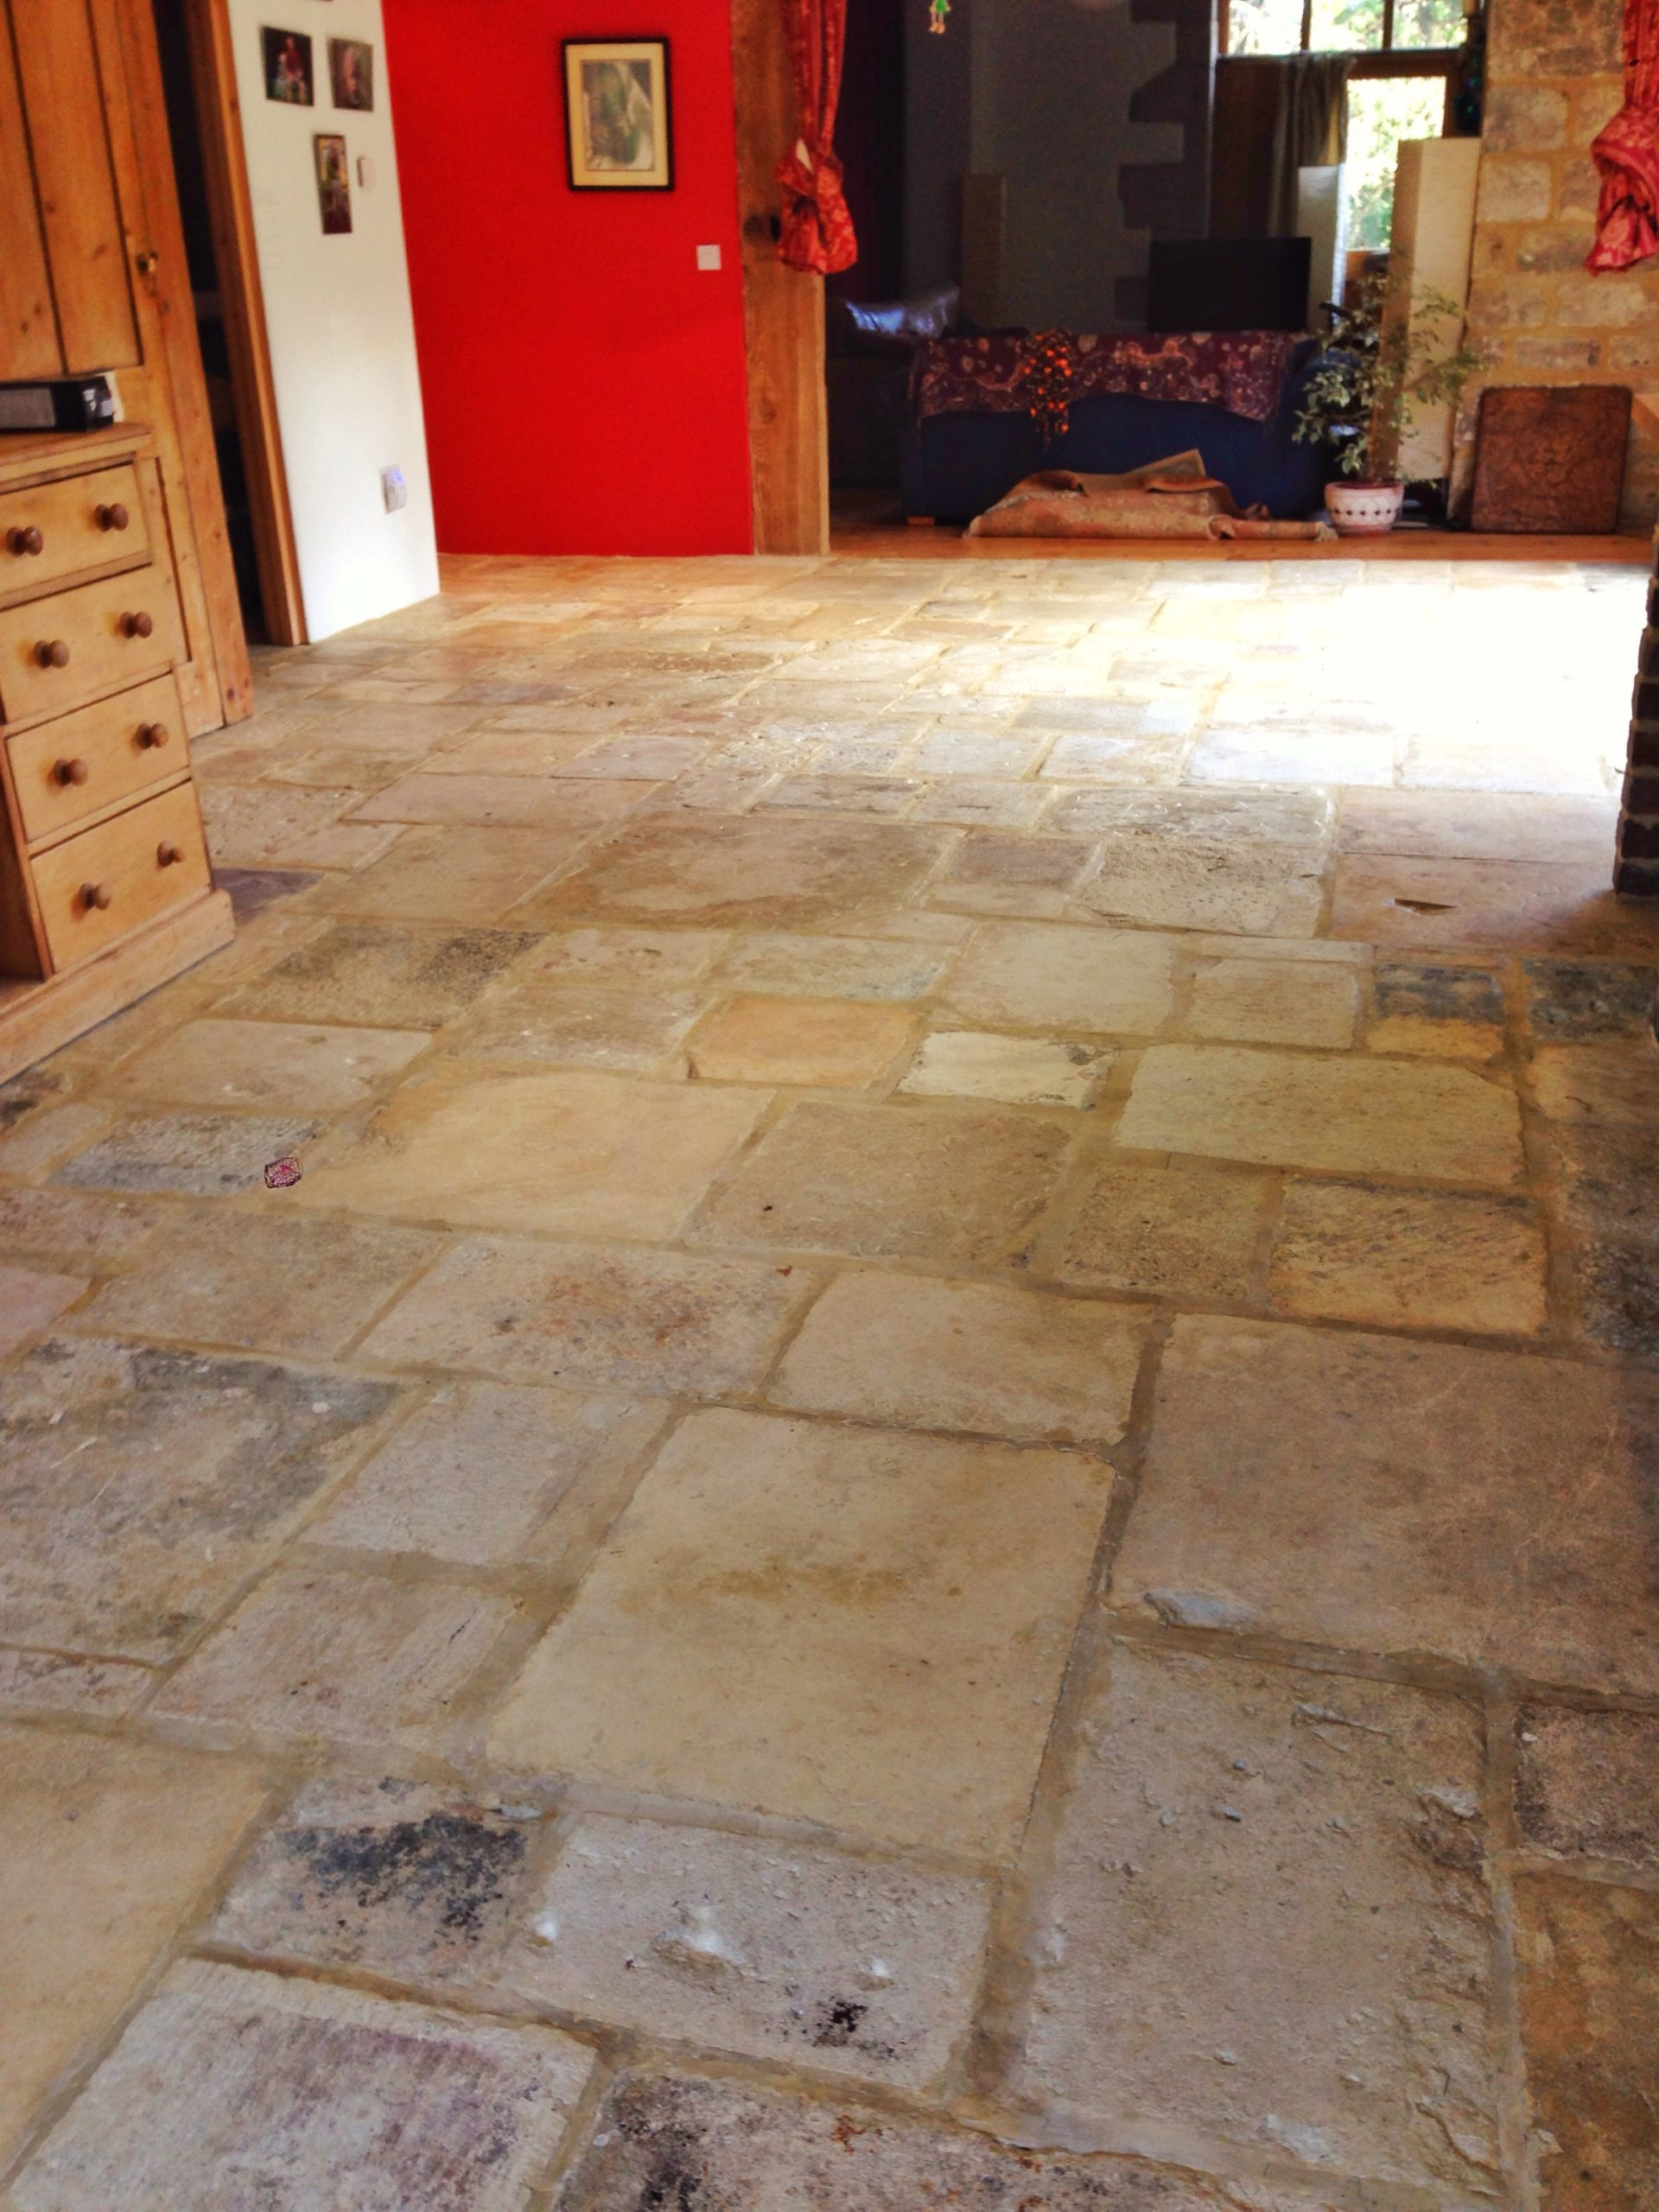 12 Marble Floor Designs For Styling Every Home: Cotswold Flag Stone Restoration